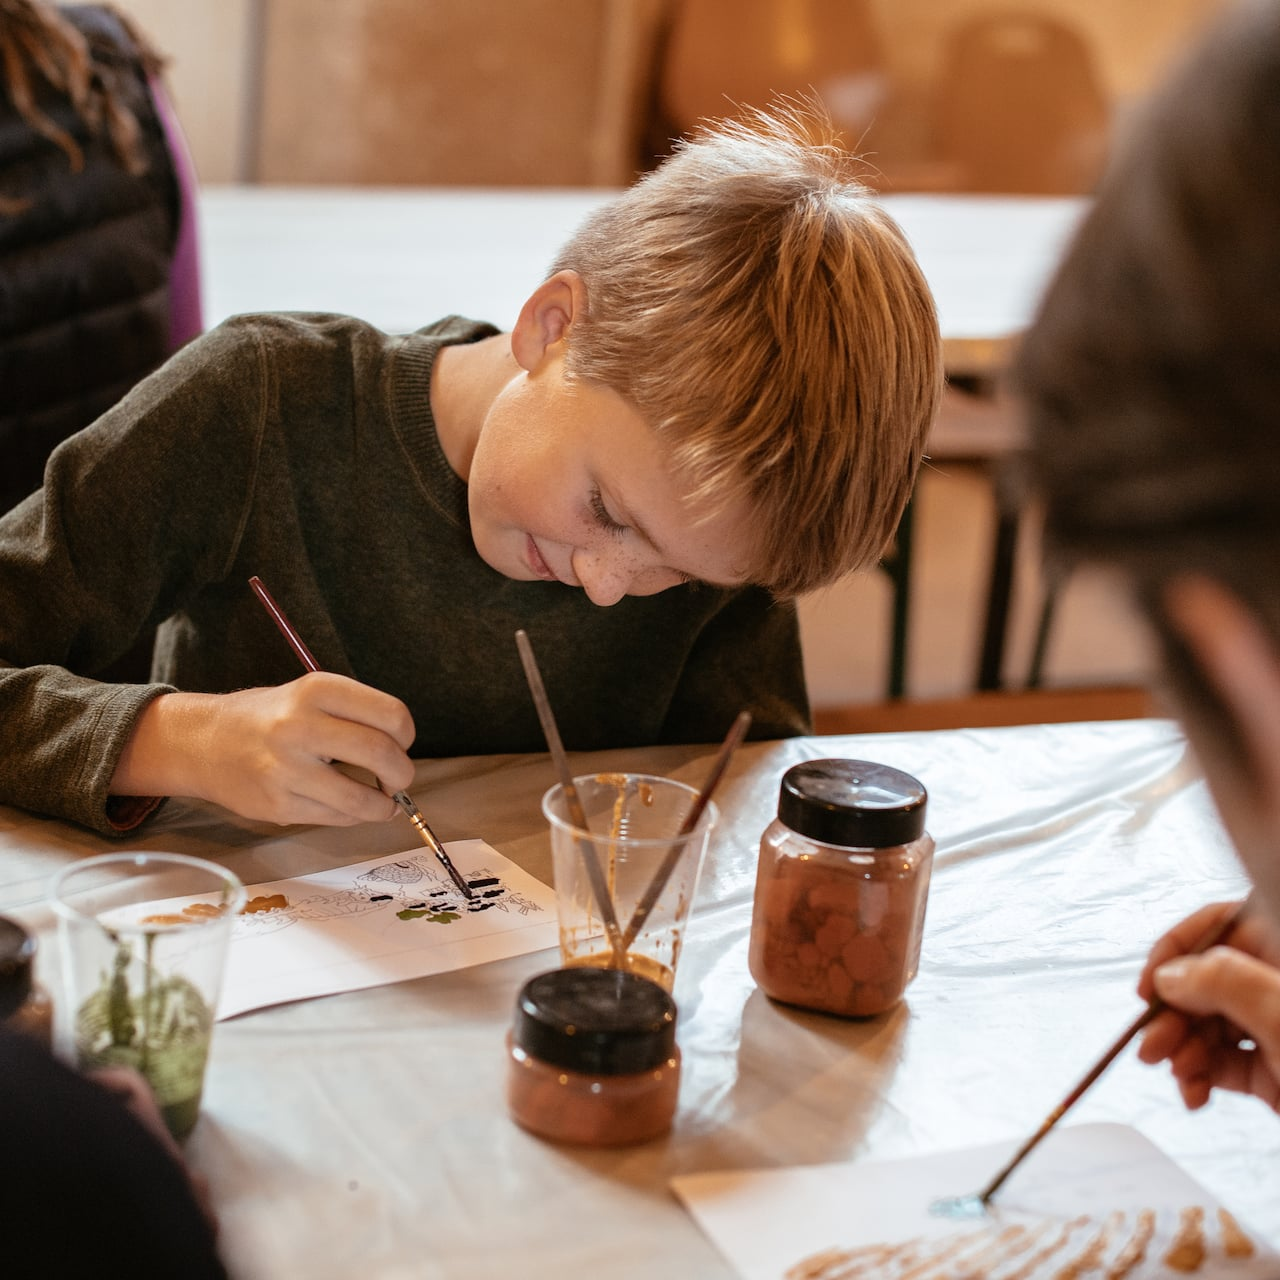 A boy paints while seated at a table with art supplies